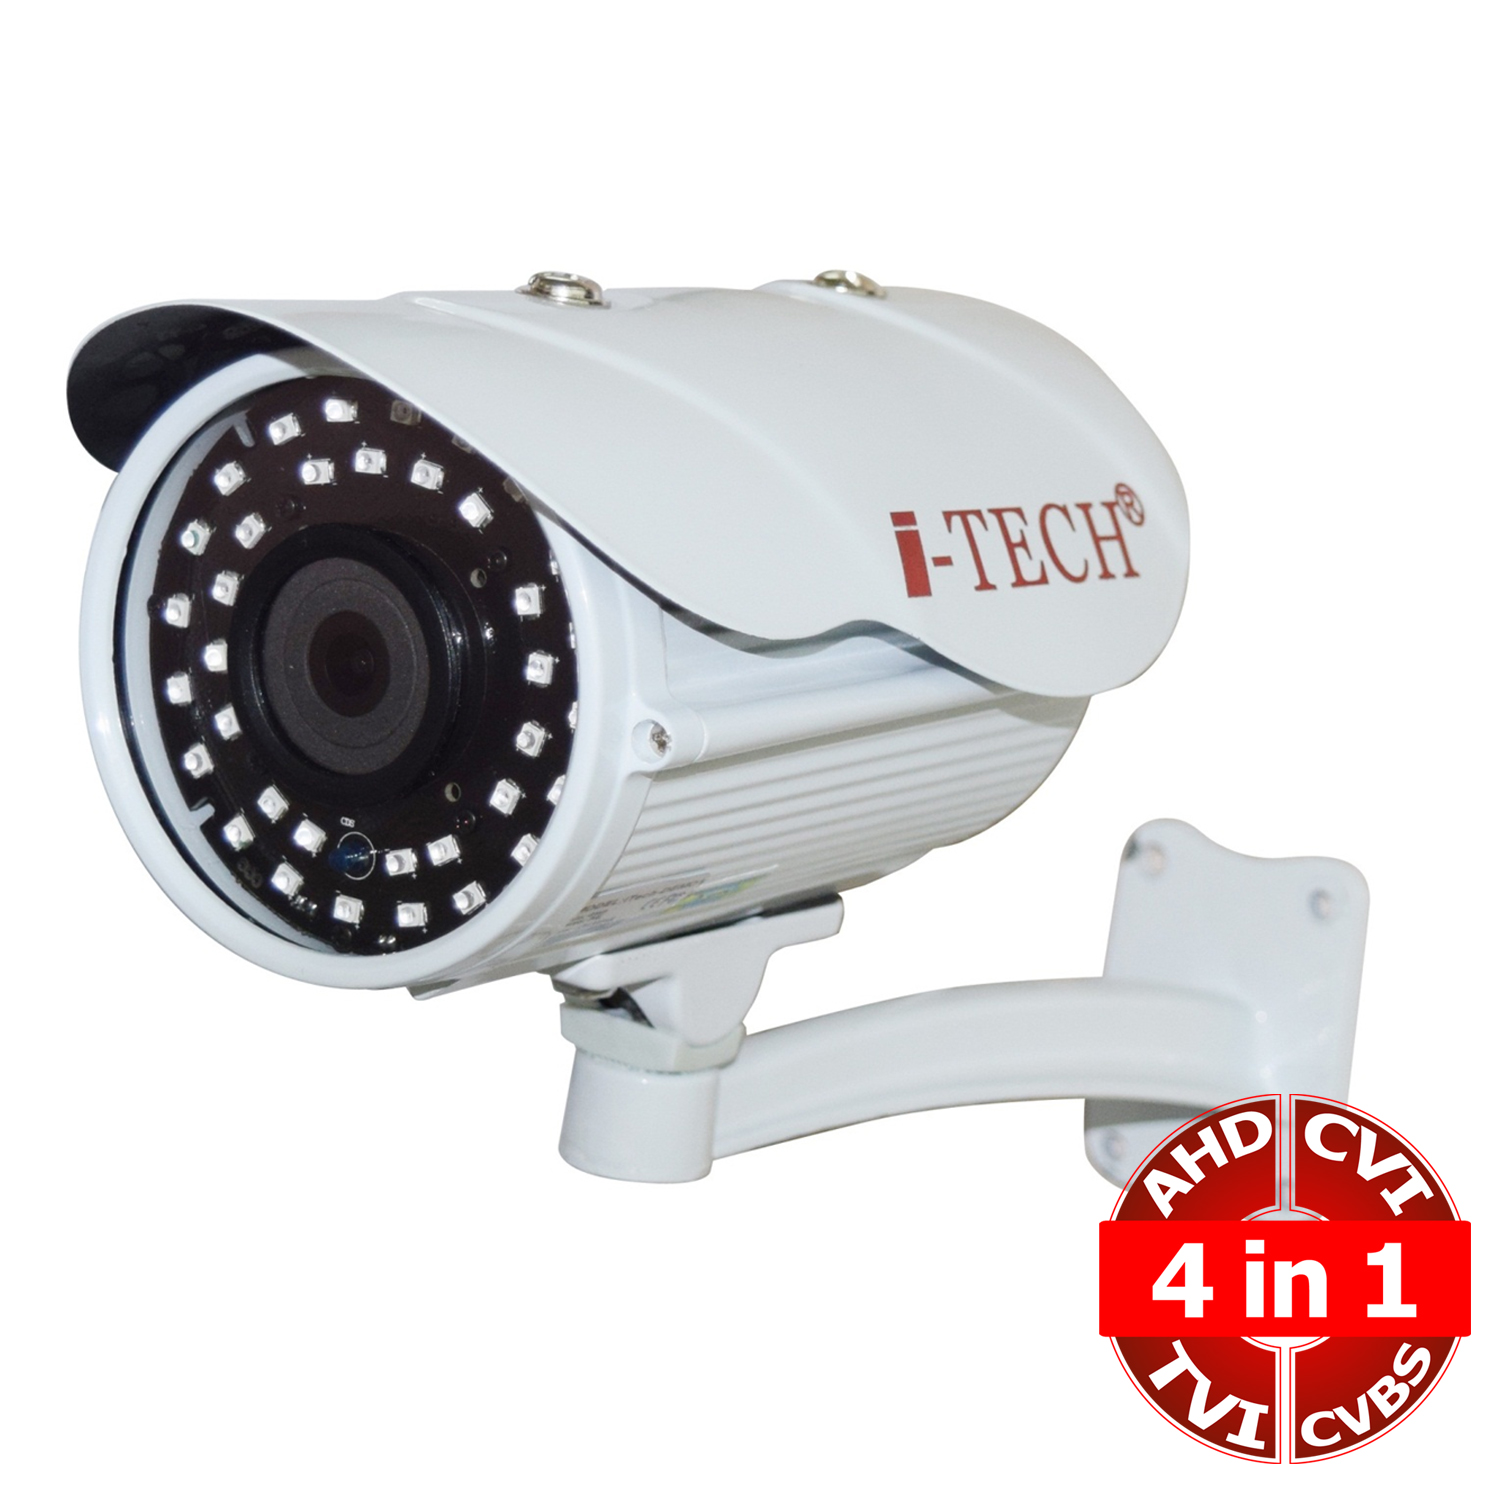 Camera AHD 4 in 1 iTech-XG7V